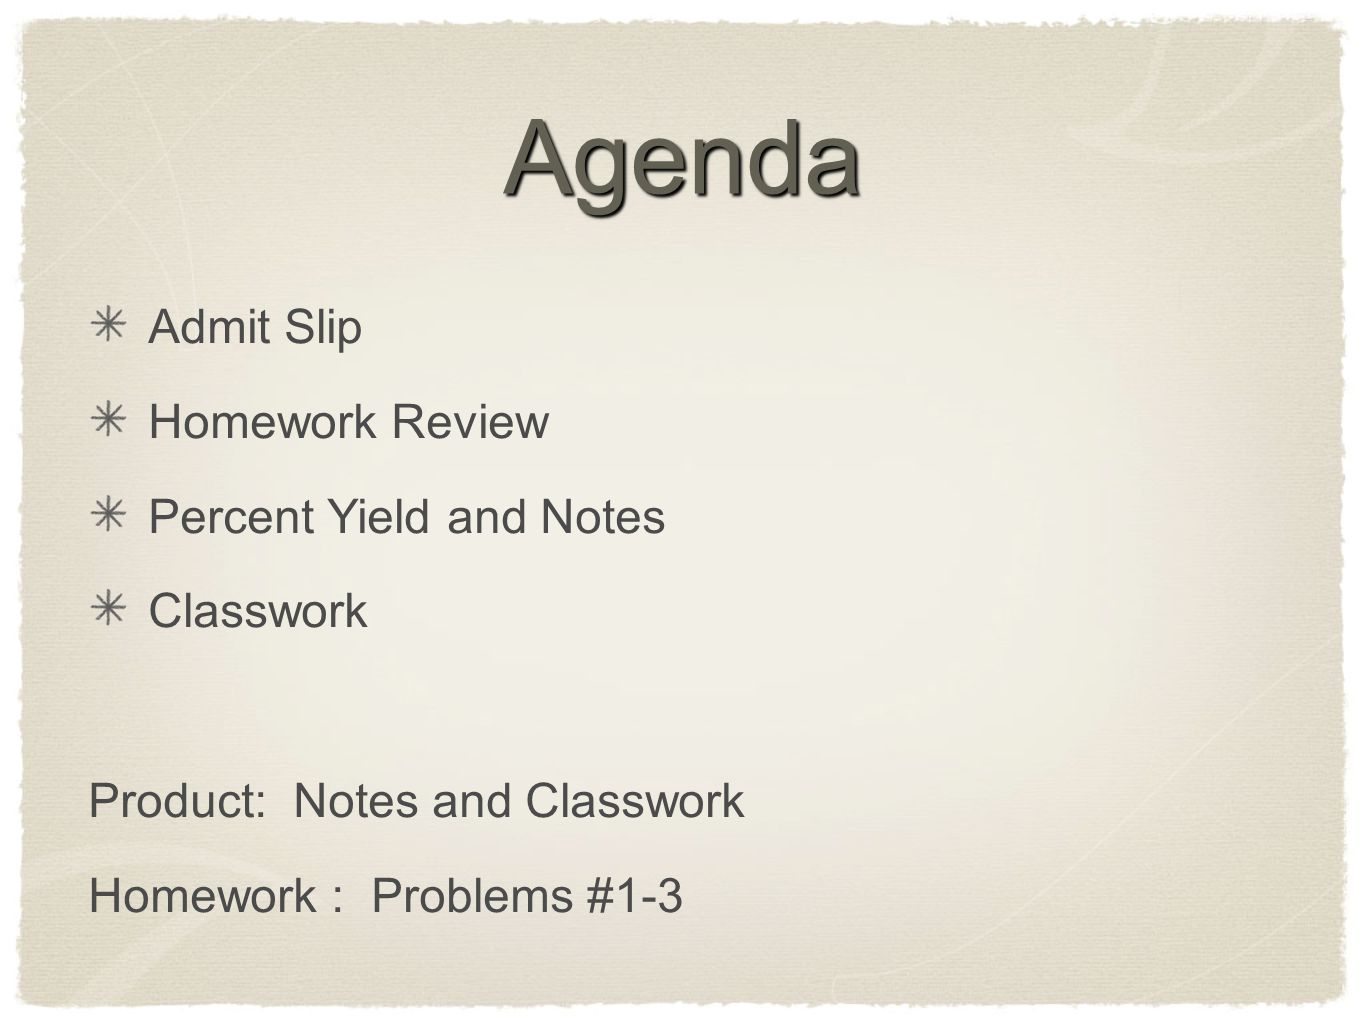 Agenda Admit Slip Homework Review Percent Yield and Notes Classwork